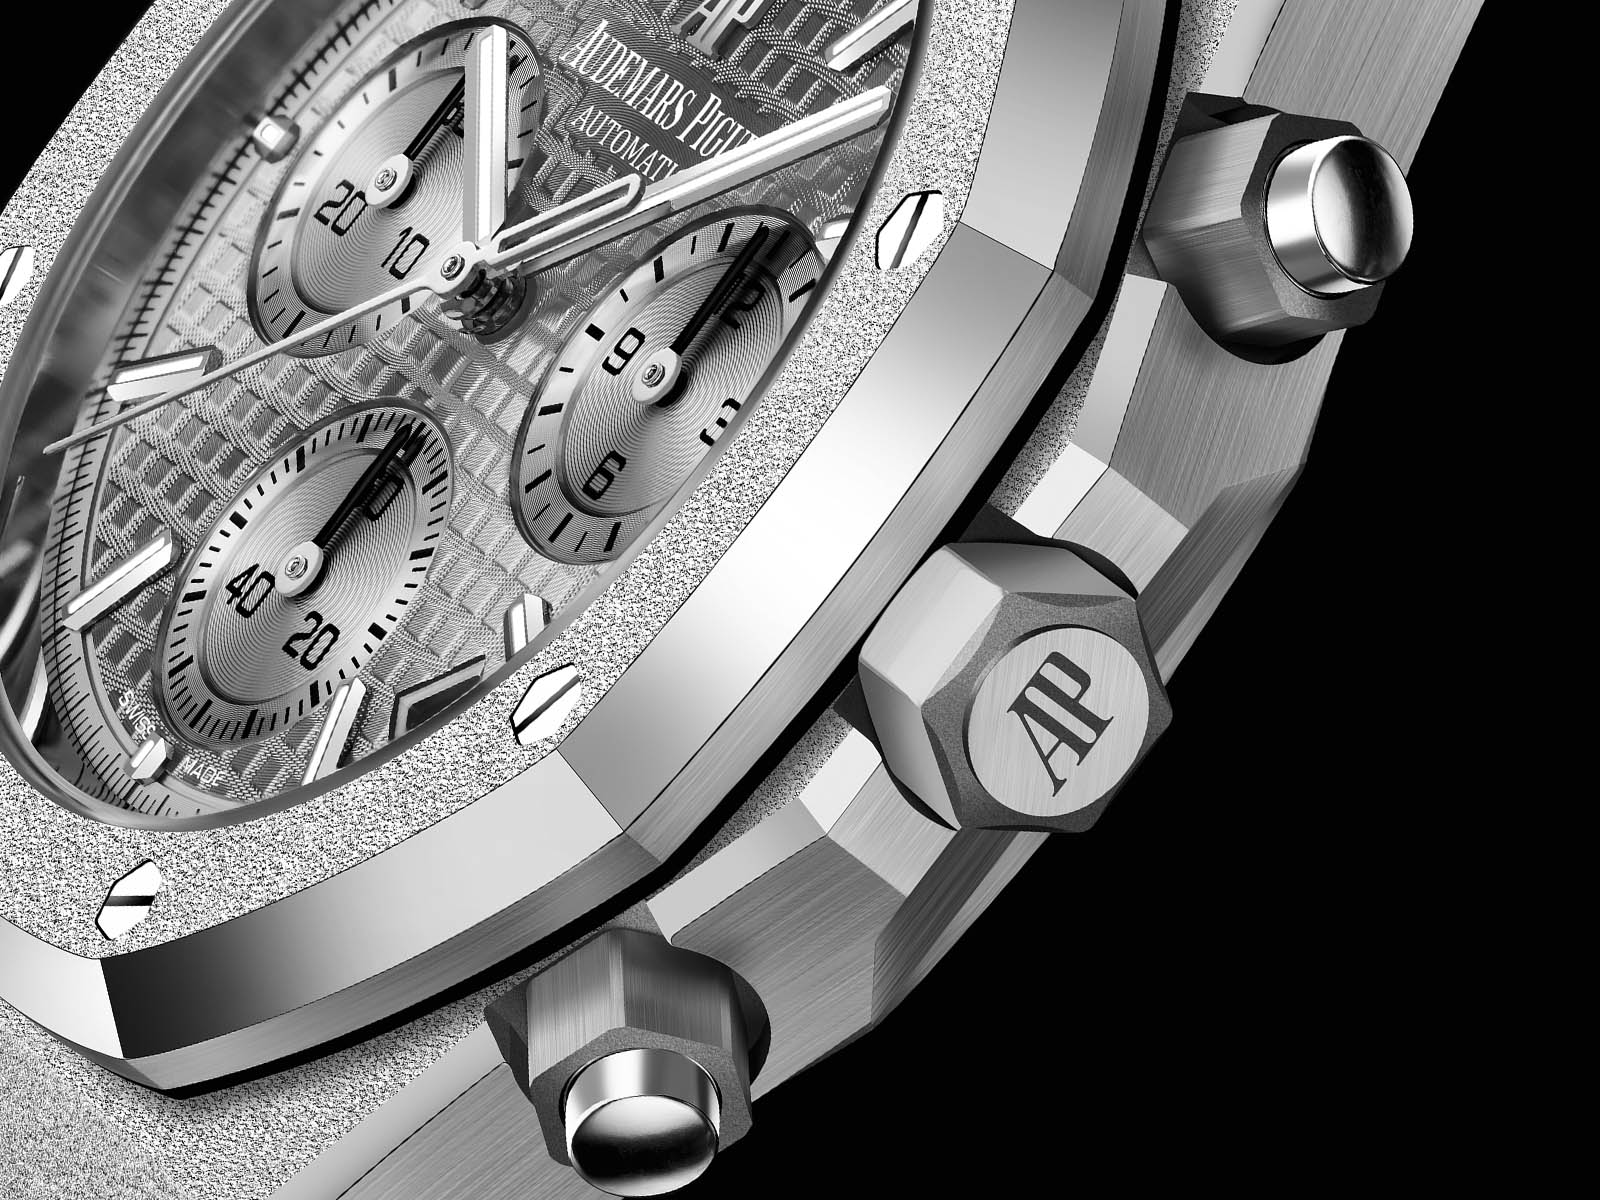 ap-ro-selfwinding-chronograph-41mm-frosted-gold-4.jpg